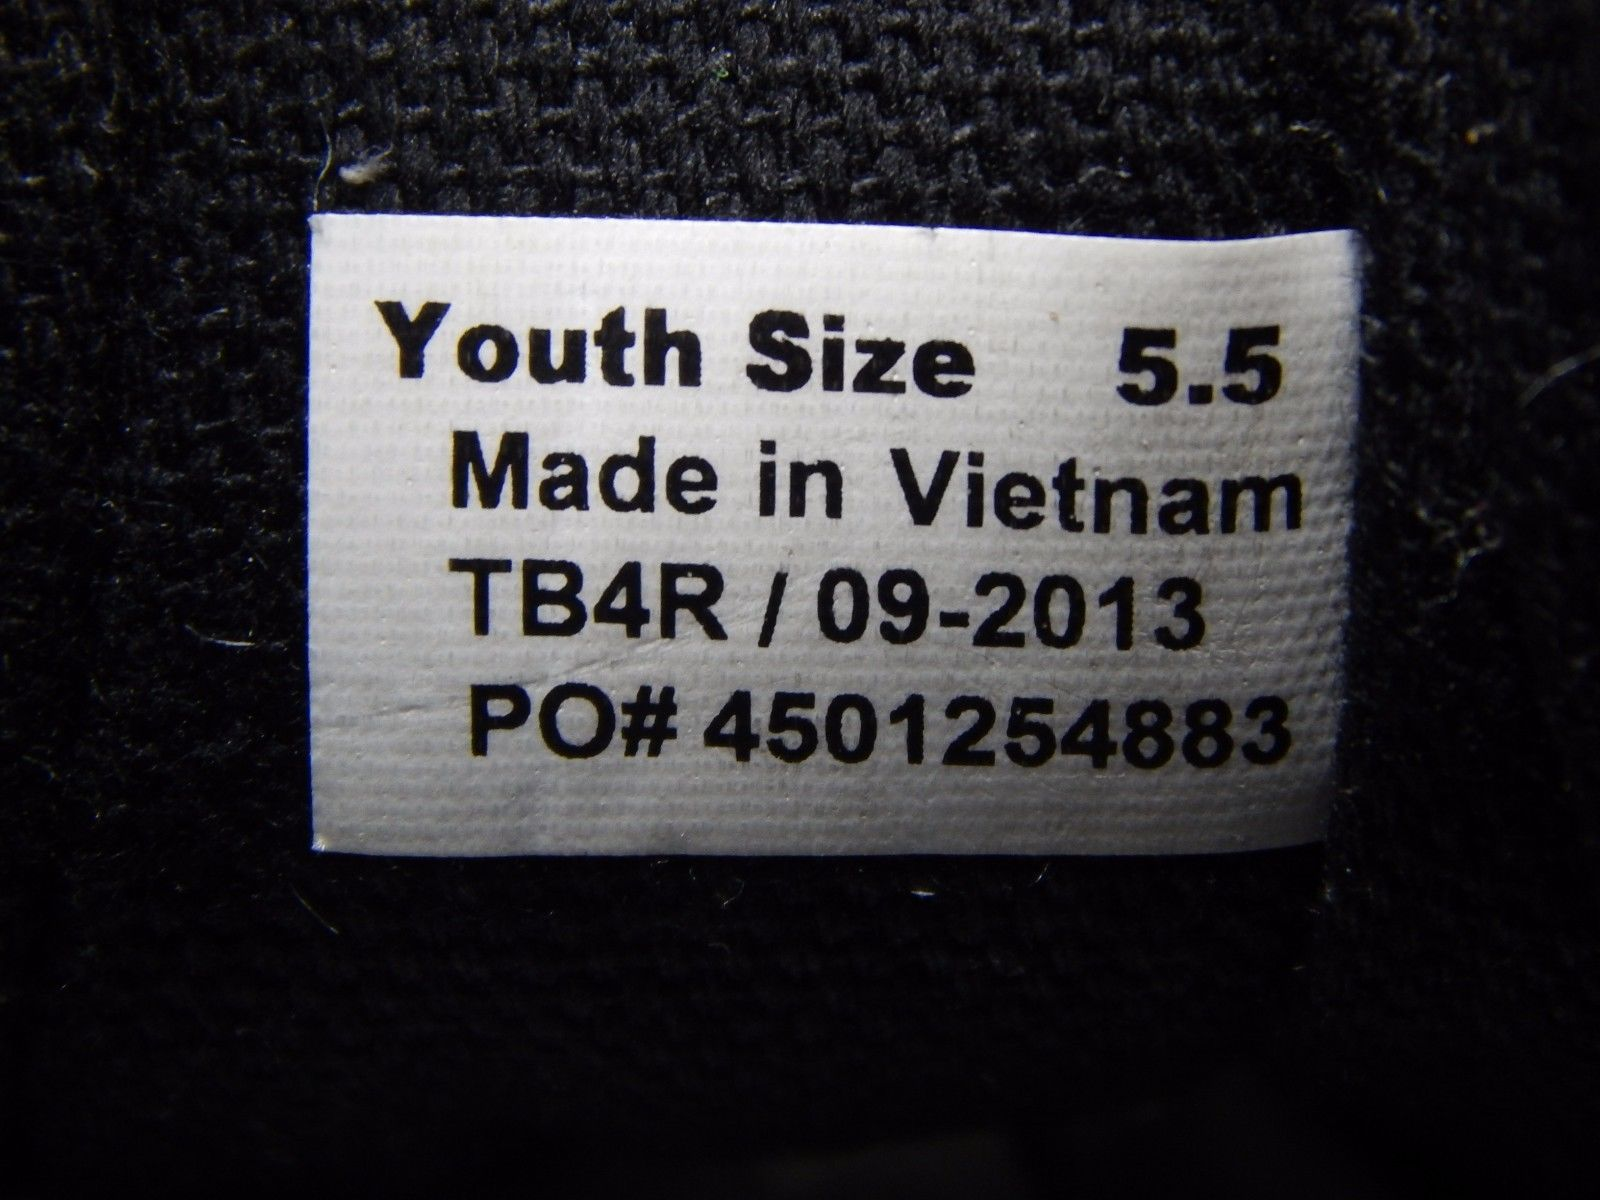 Vans Women's Boy's or Girl's Youth Casual Skate Shoes Sneakers Size US 5.5 Y